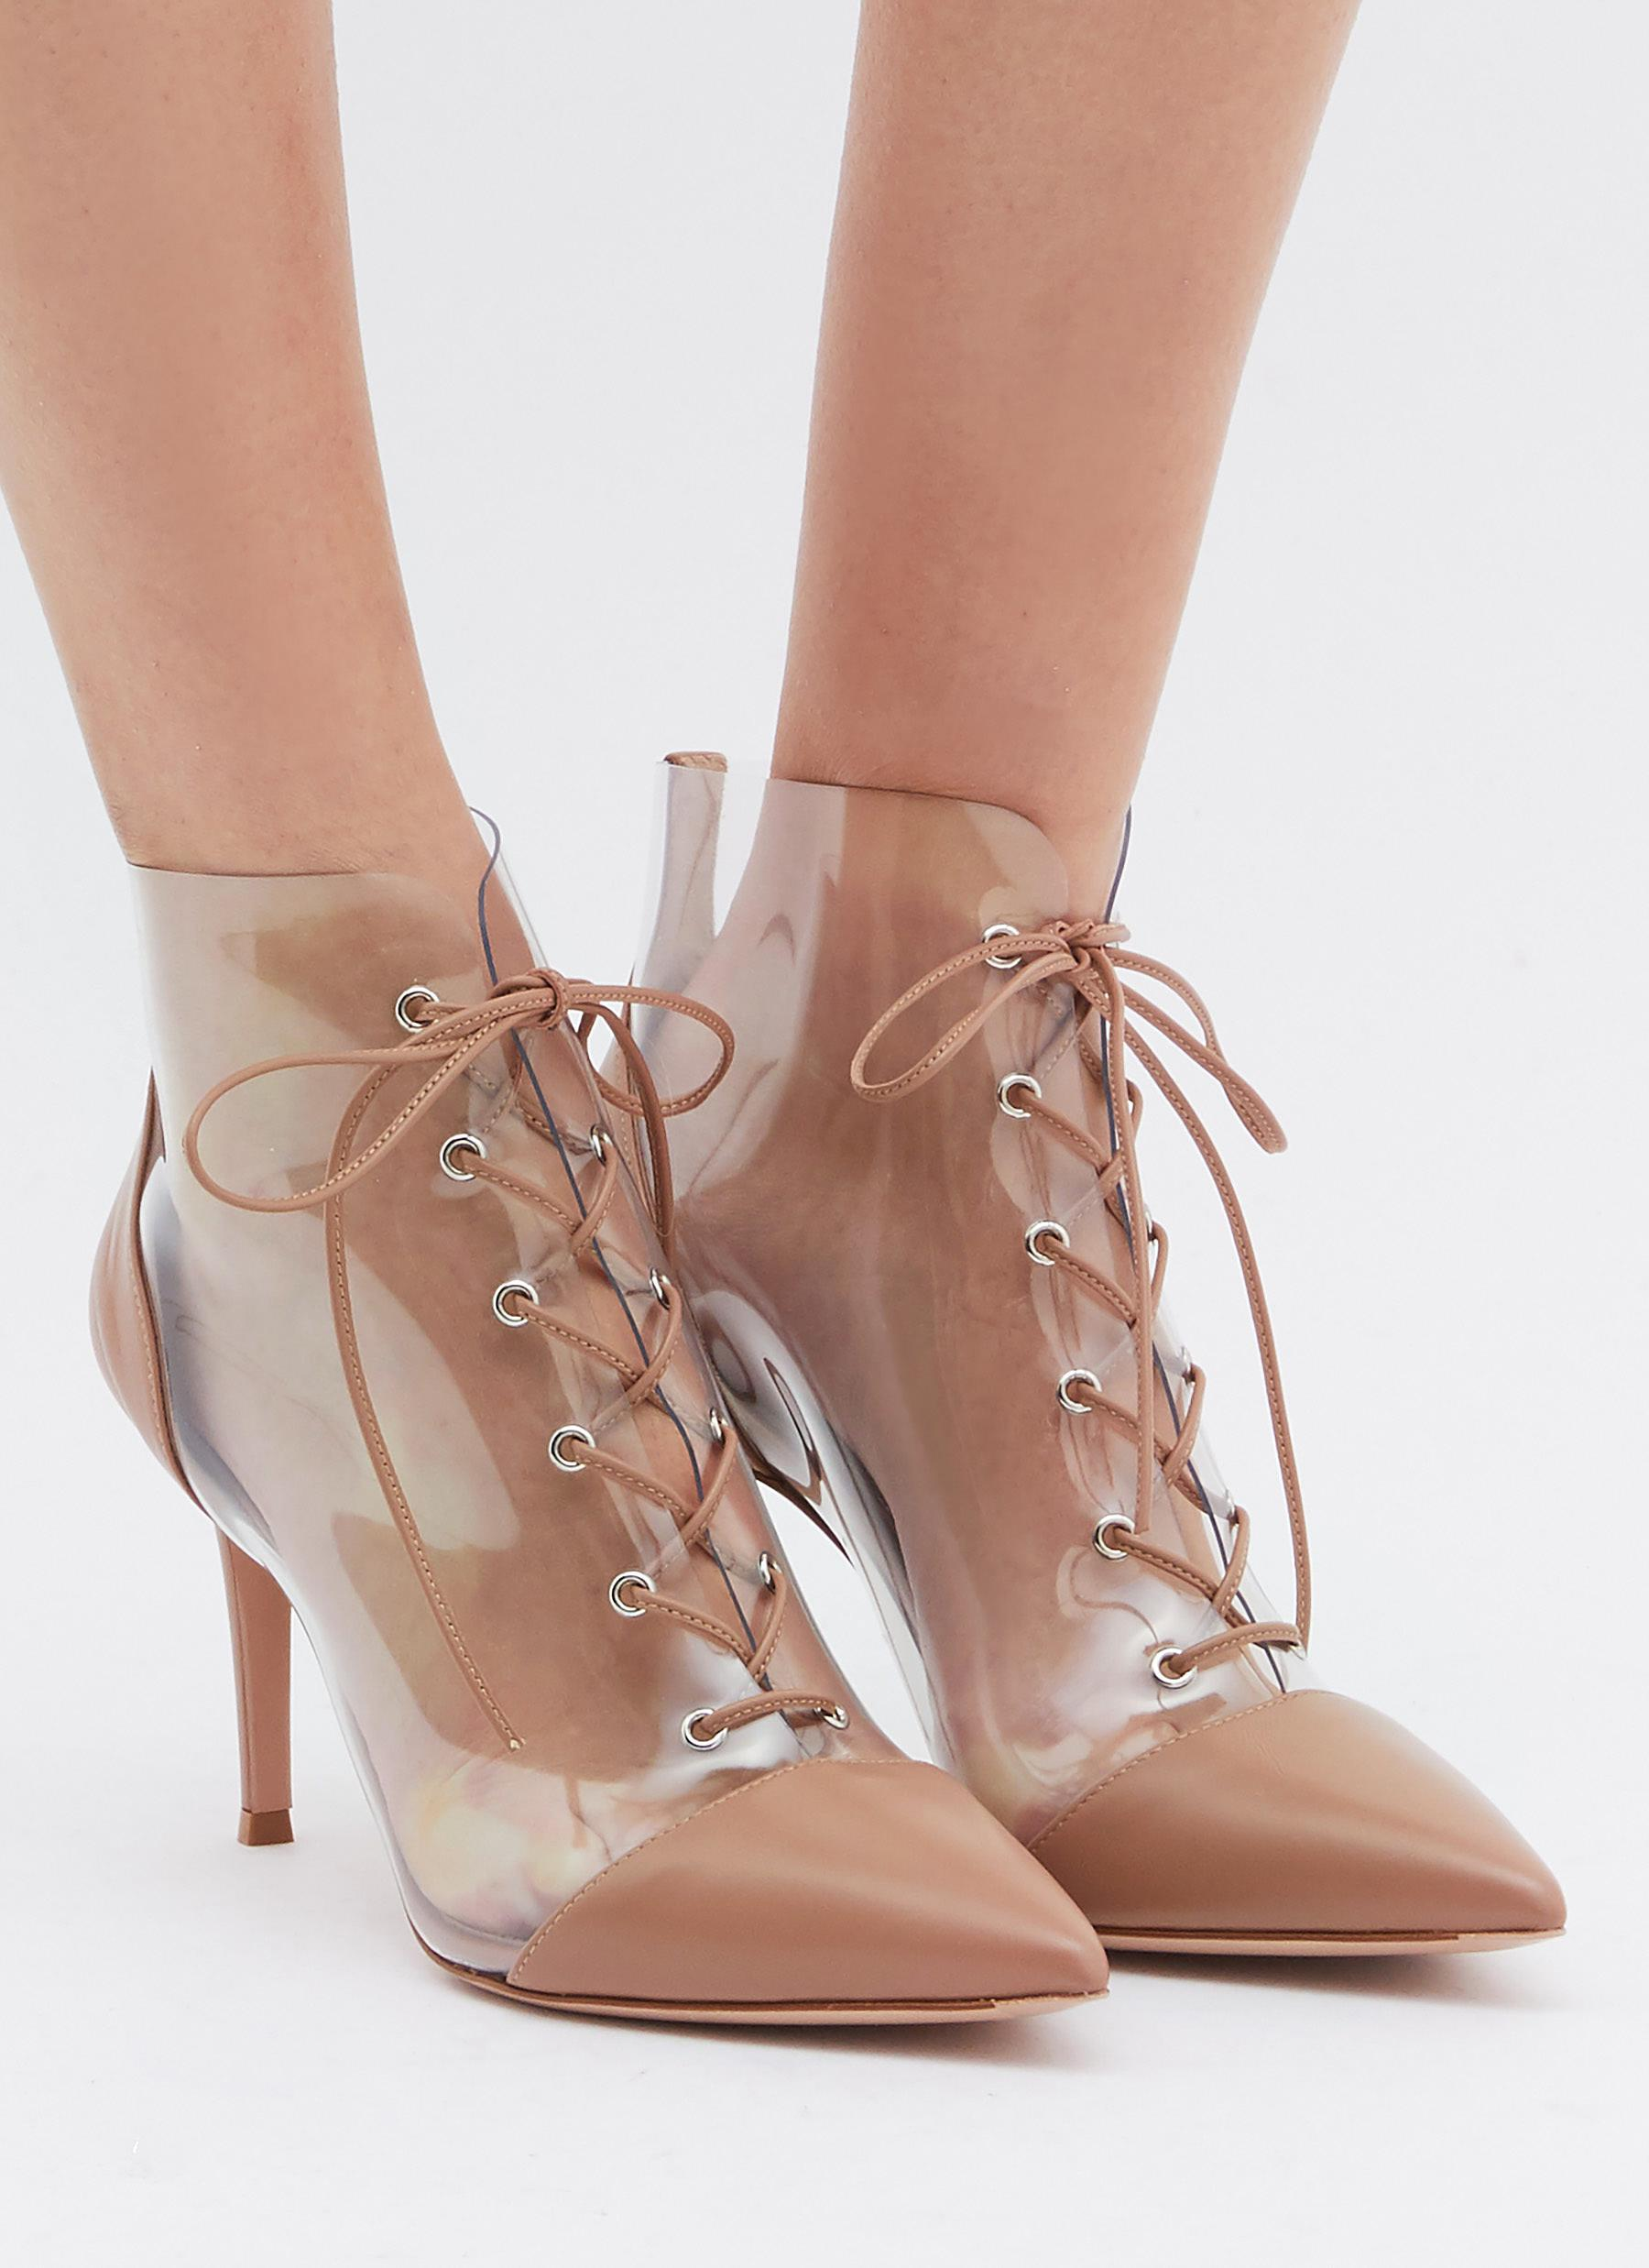 e7e1c4382e3 Gianvito Rossi - Pink  icon  Lace-up Clear Pvc Leather Ankle Boots -. View  fullscreen